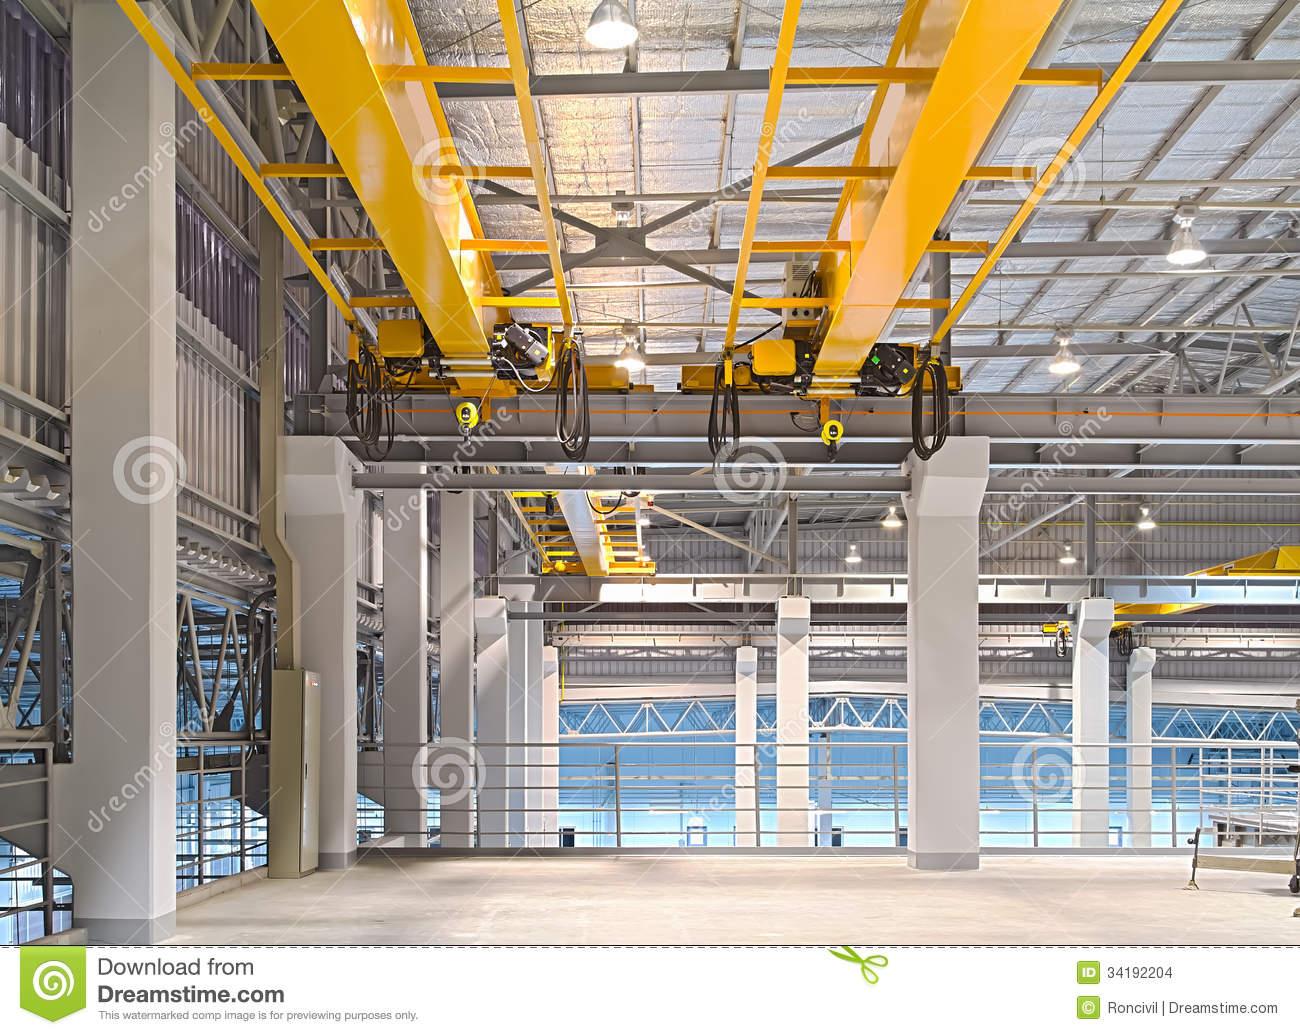 crane-factory-overhead-installation-rail-can-movement-to-every-where-factory-area-34192204.jpg